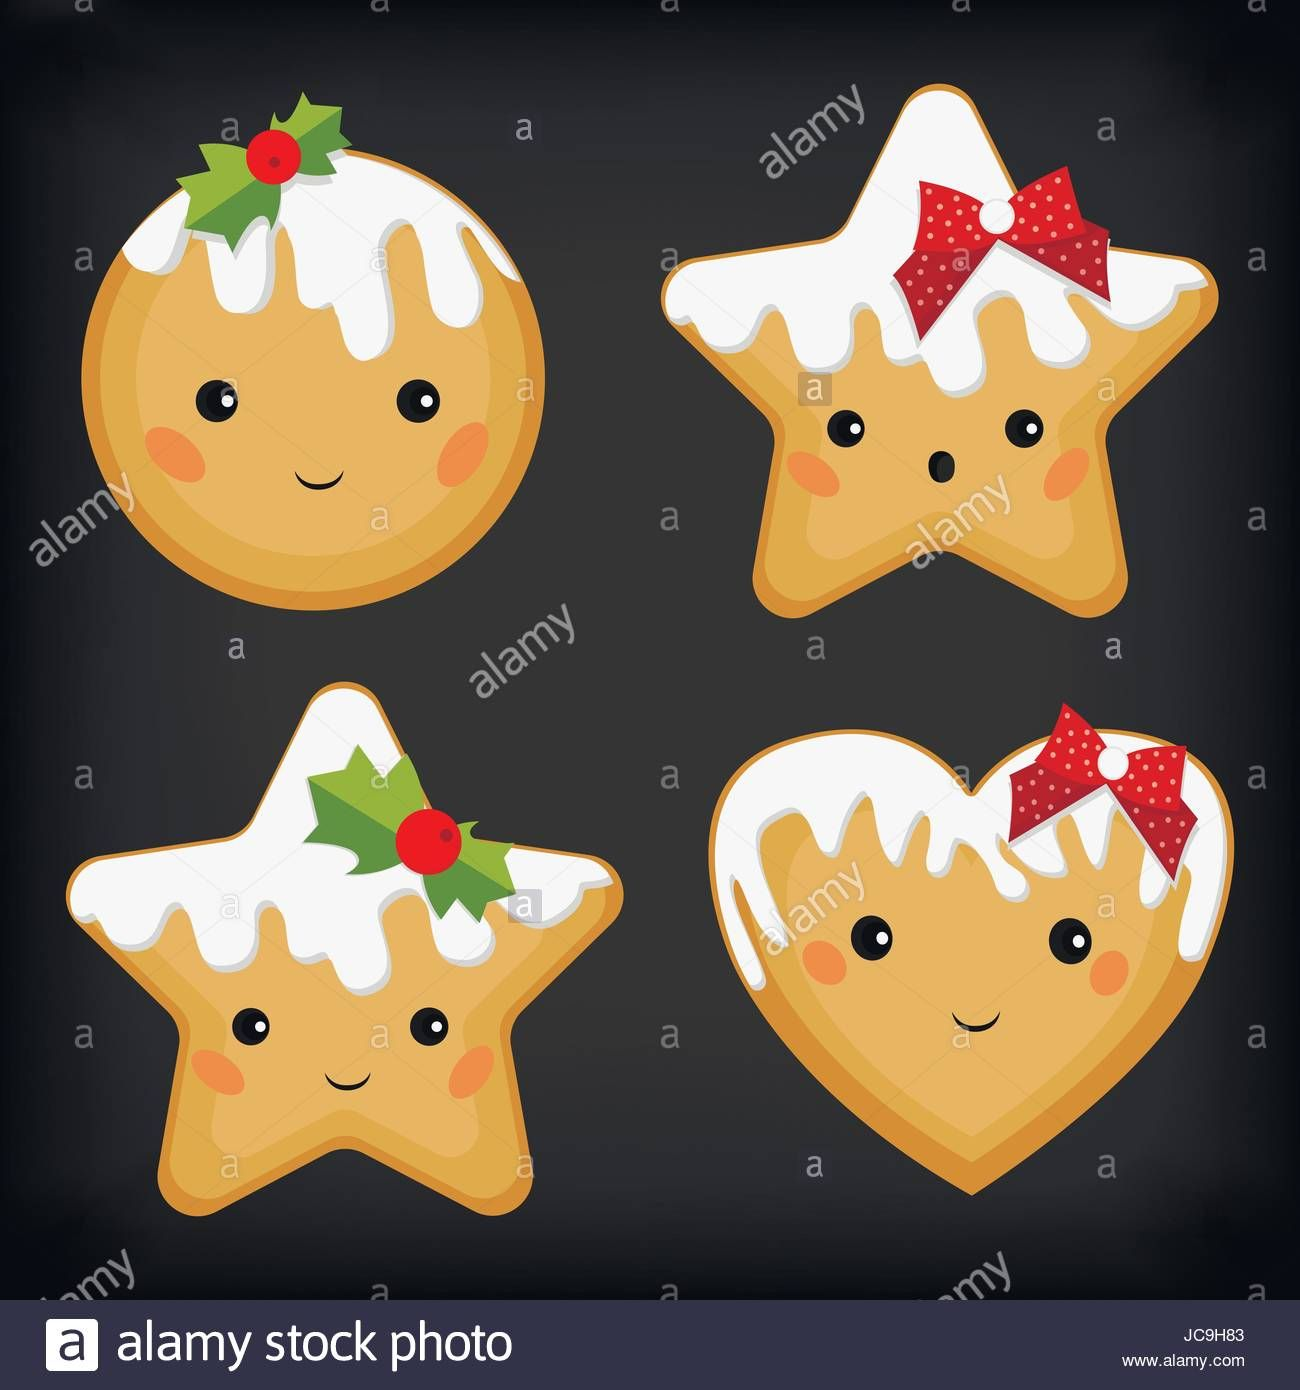 Gingerbread ginger cookie cookies funny cute star heart